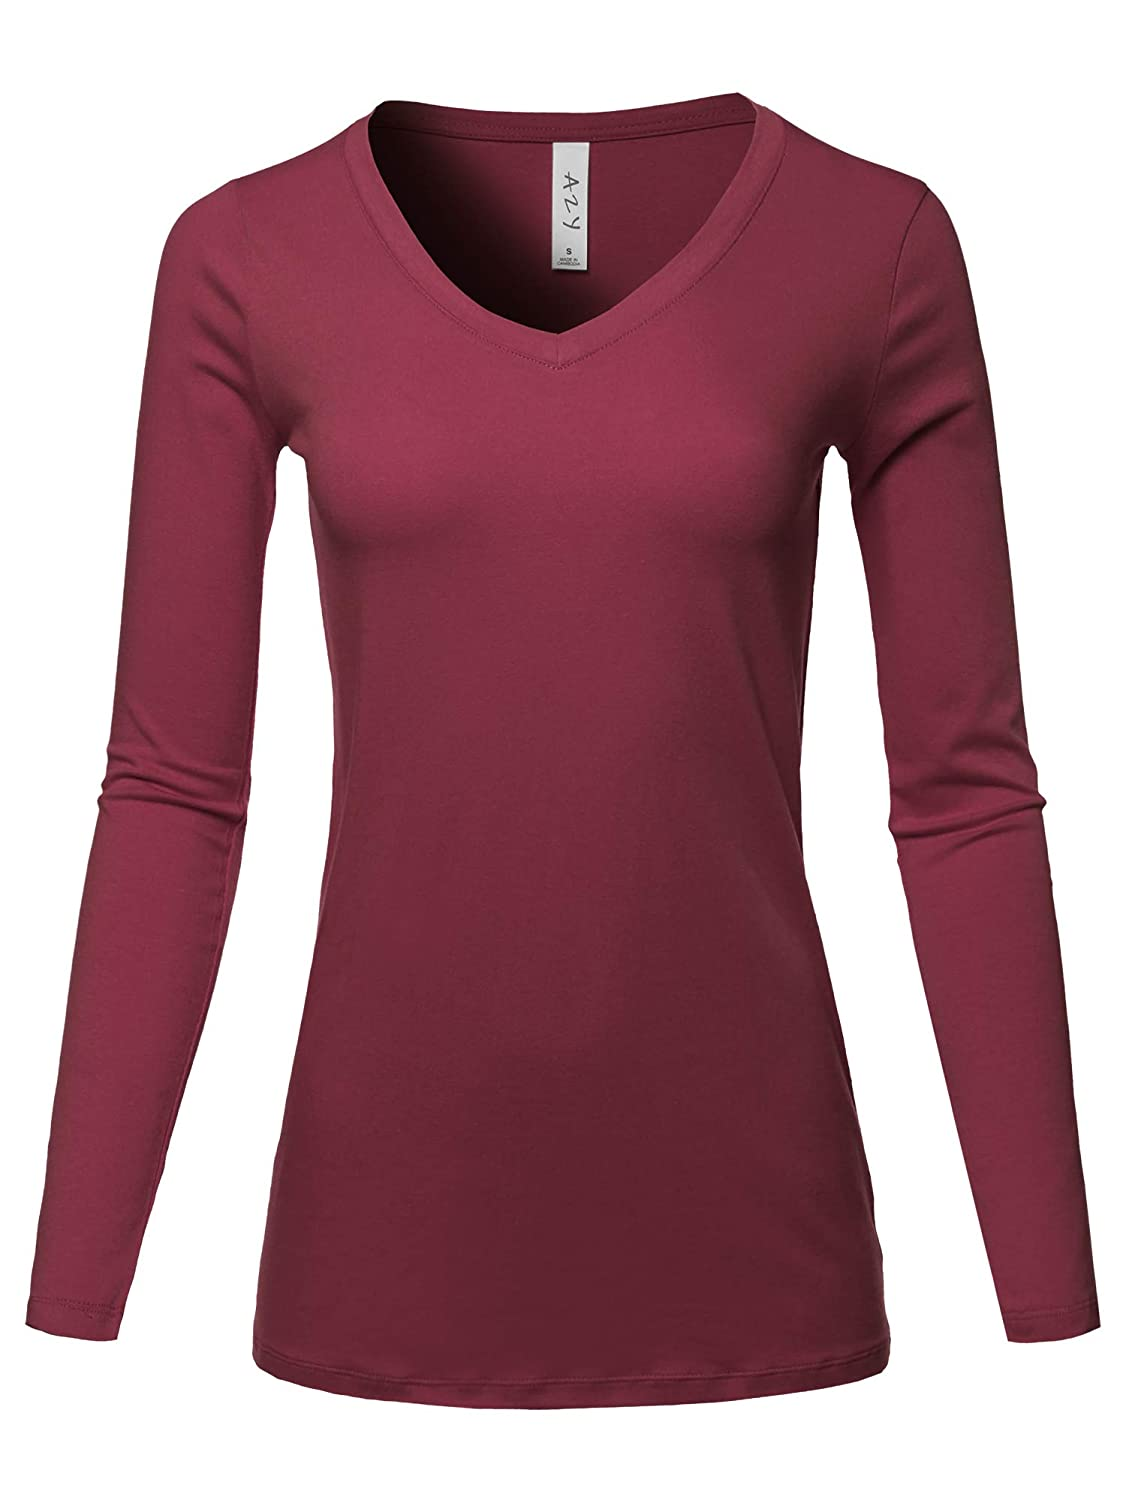 Women's Basic Solid Soft Cotton Long Sleeve V-Neck Top T-Shirt (S - 3XL)